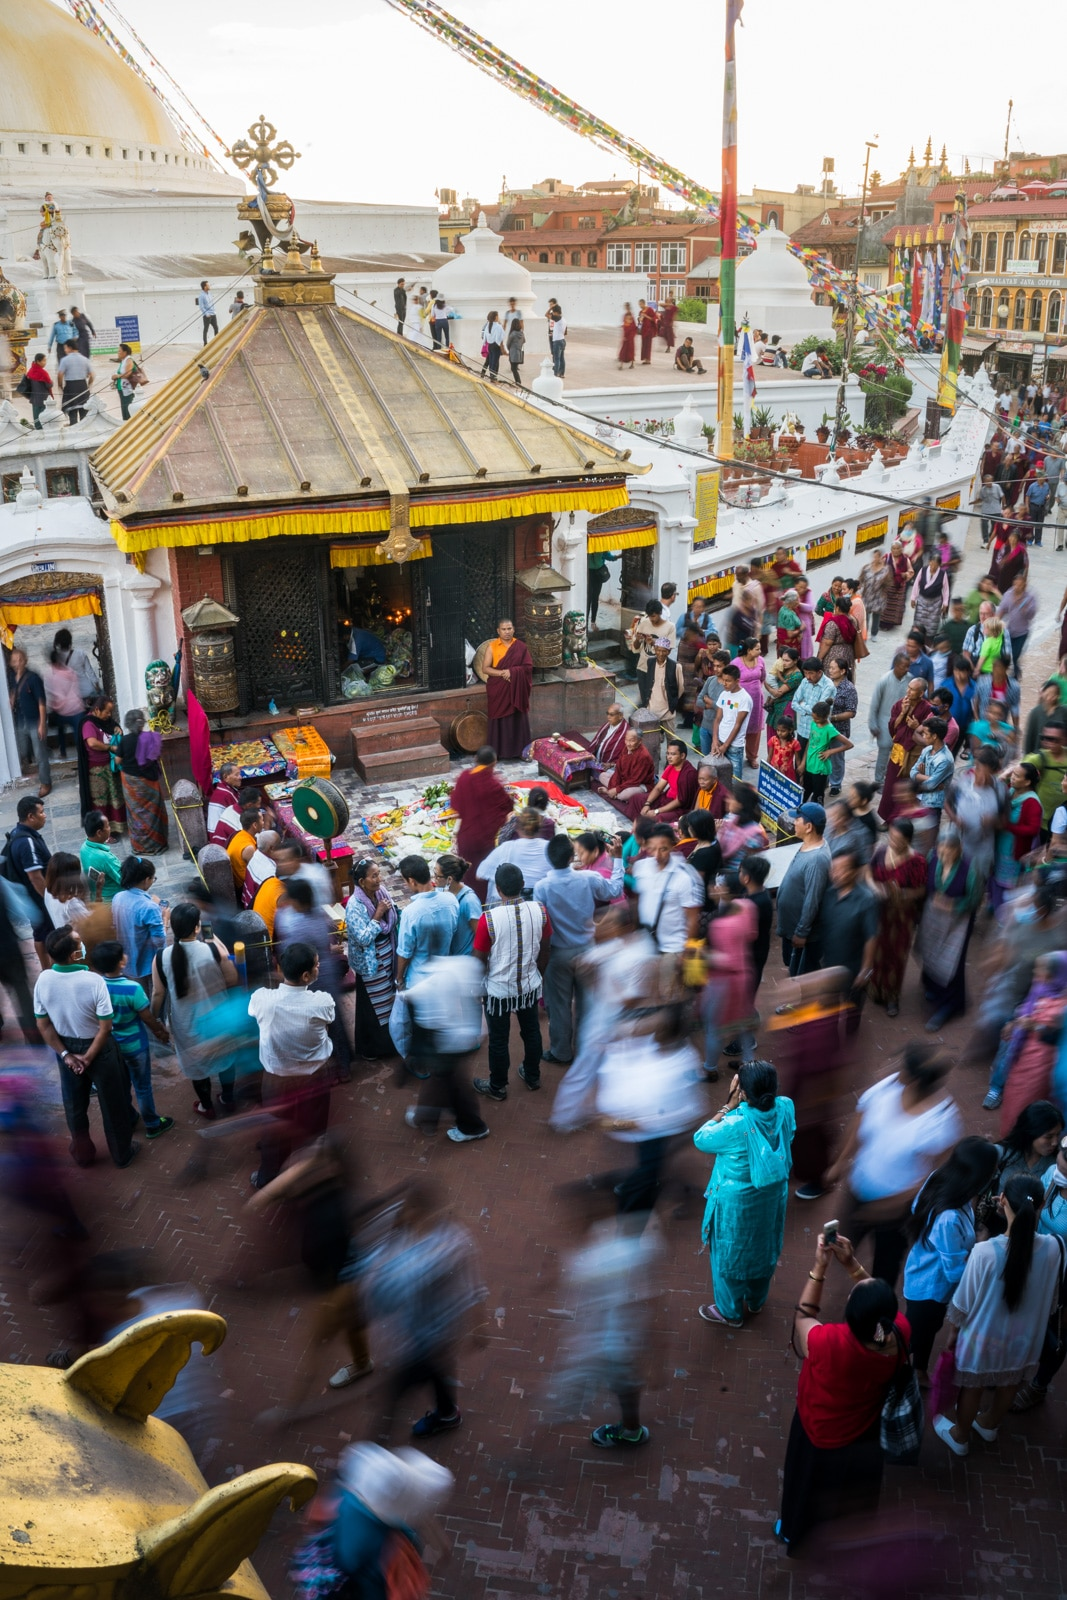 Rushing crowds of pilgrims and travelers visiting the famous UNESCO World Heritage site of Boudhanath stupa in Kathmandu, Nepal.